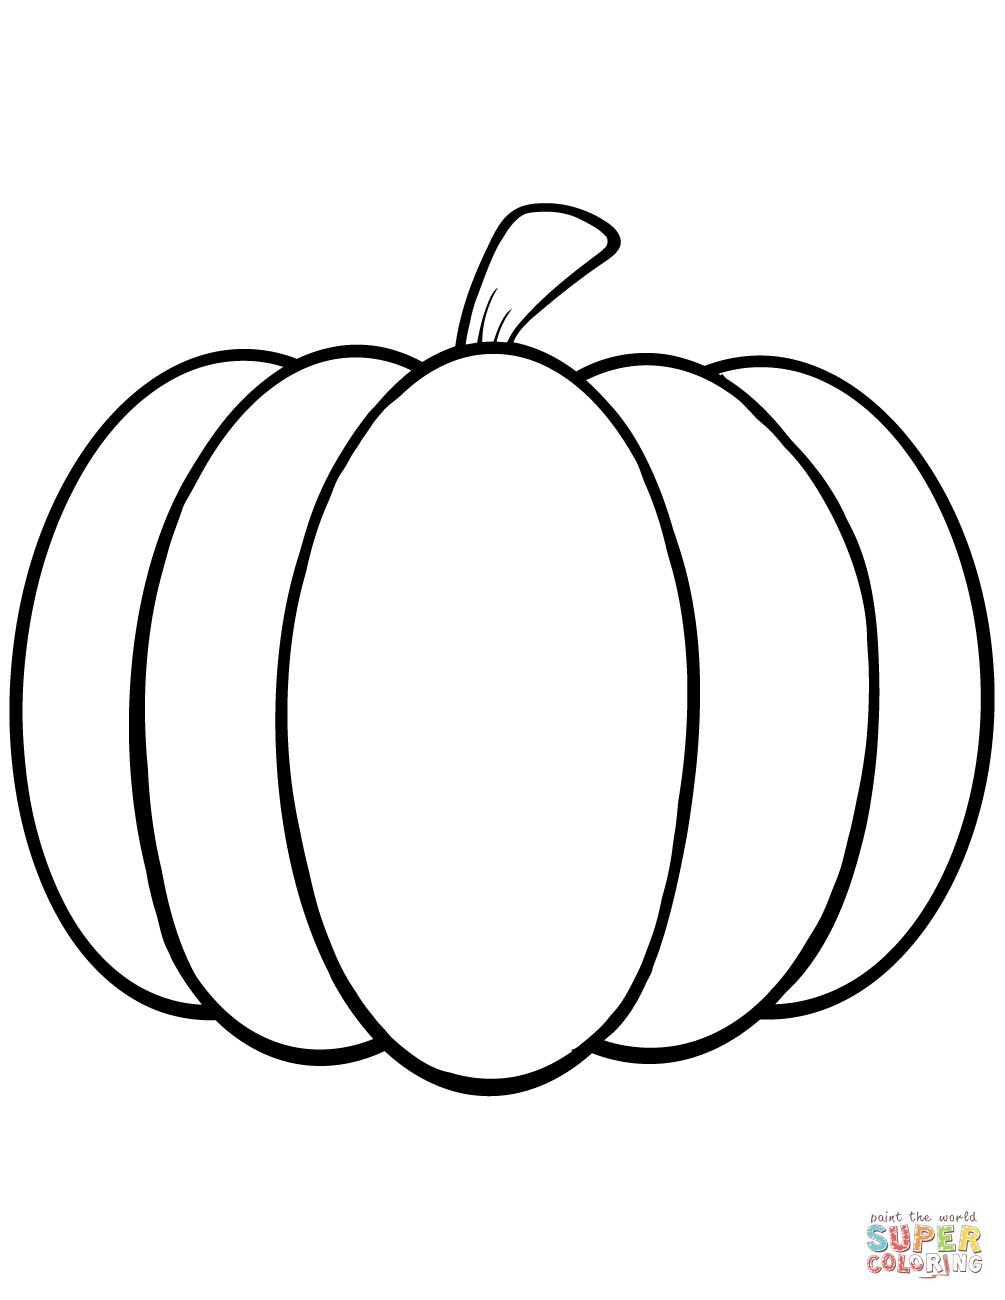 pumpkin colouring free printable pumpkin coloring pages for kids colouring pumpkin